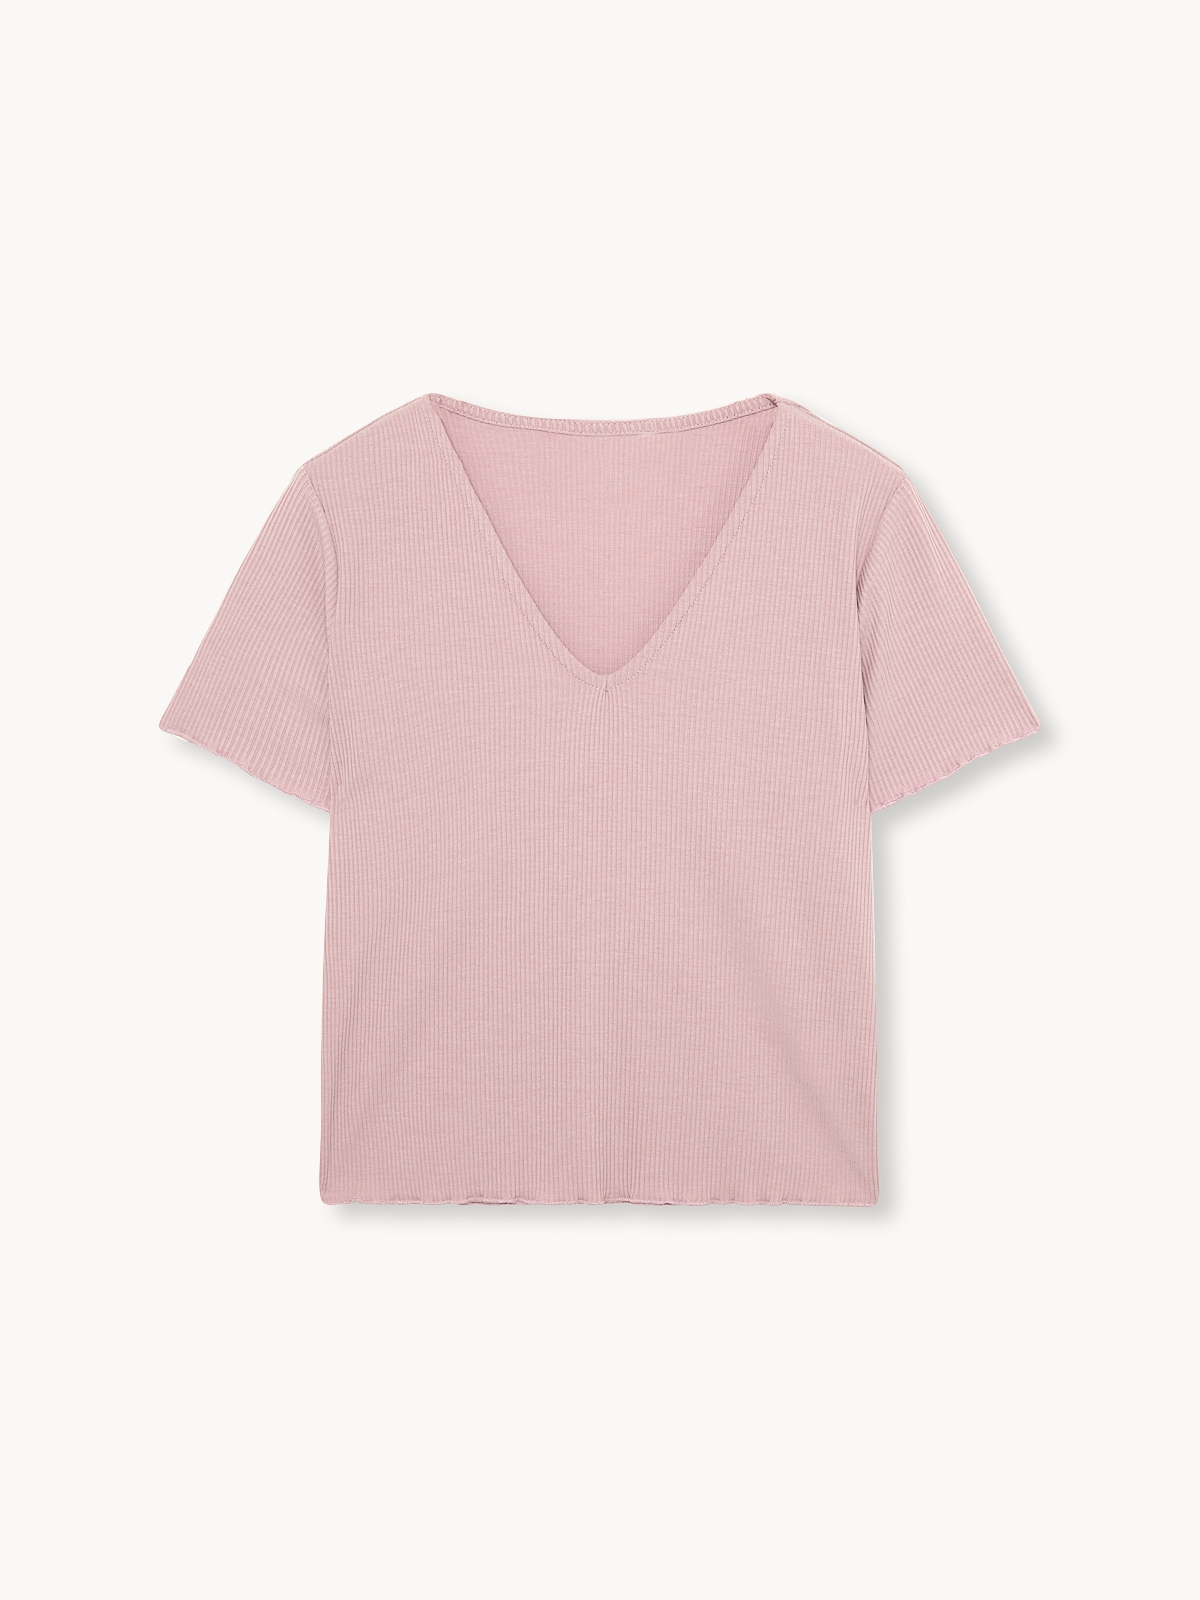 Trimmed Rib Top Pink